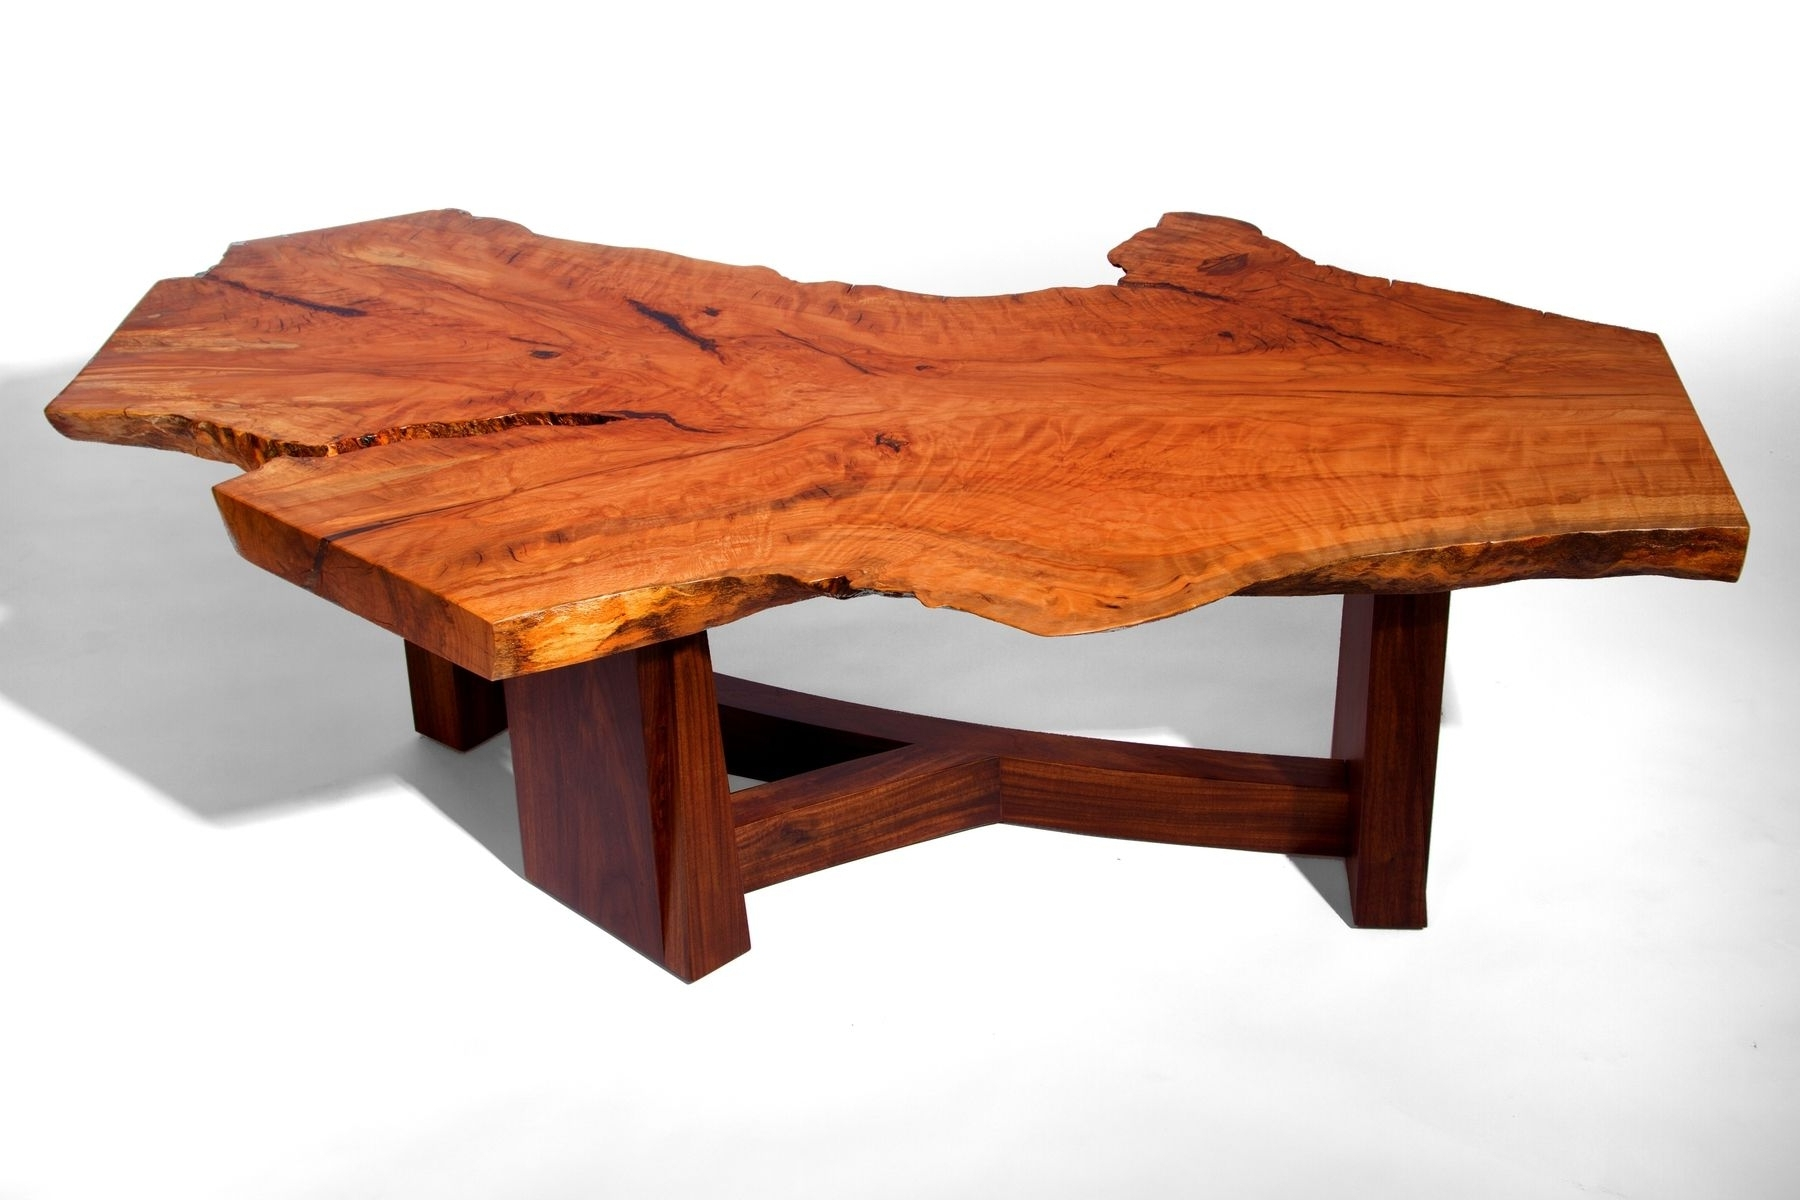 14 Live Edge Coffee Table For Sale Collections (View 1 of 20)